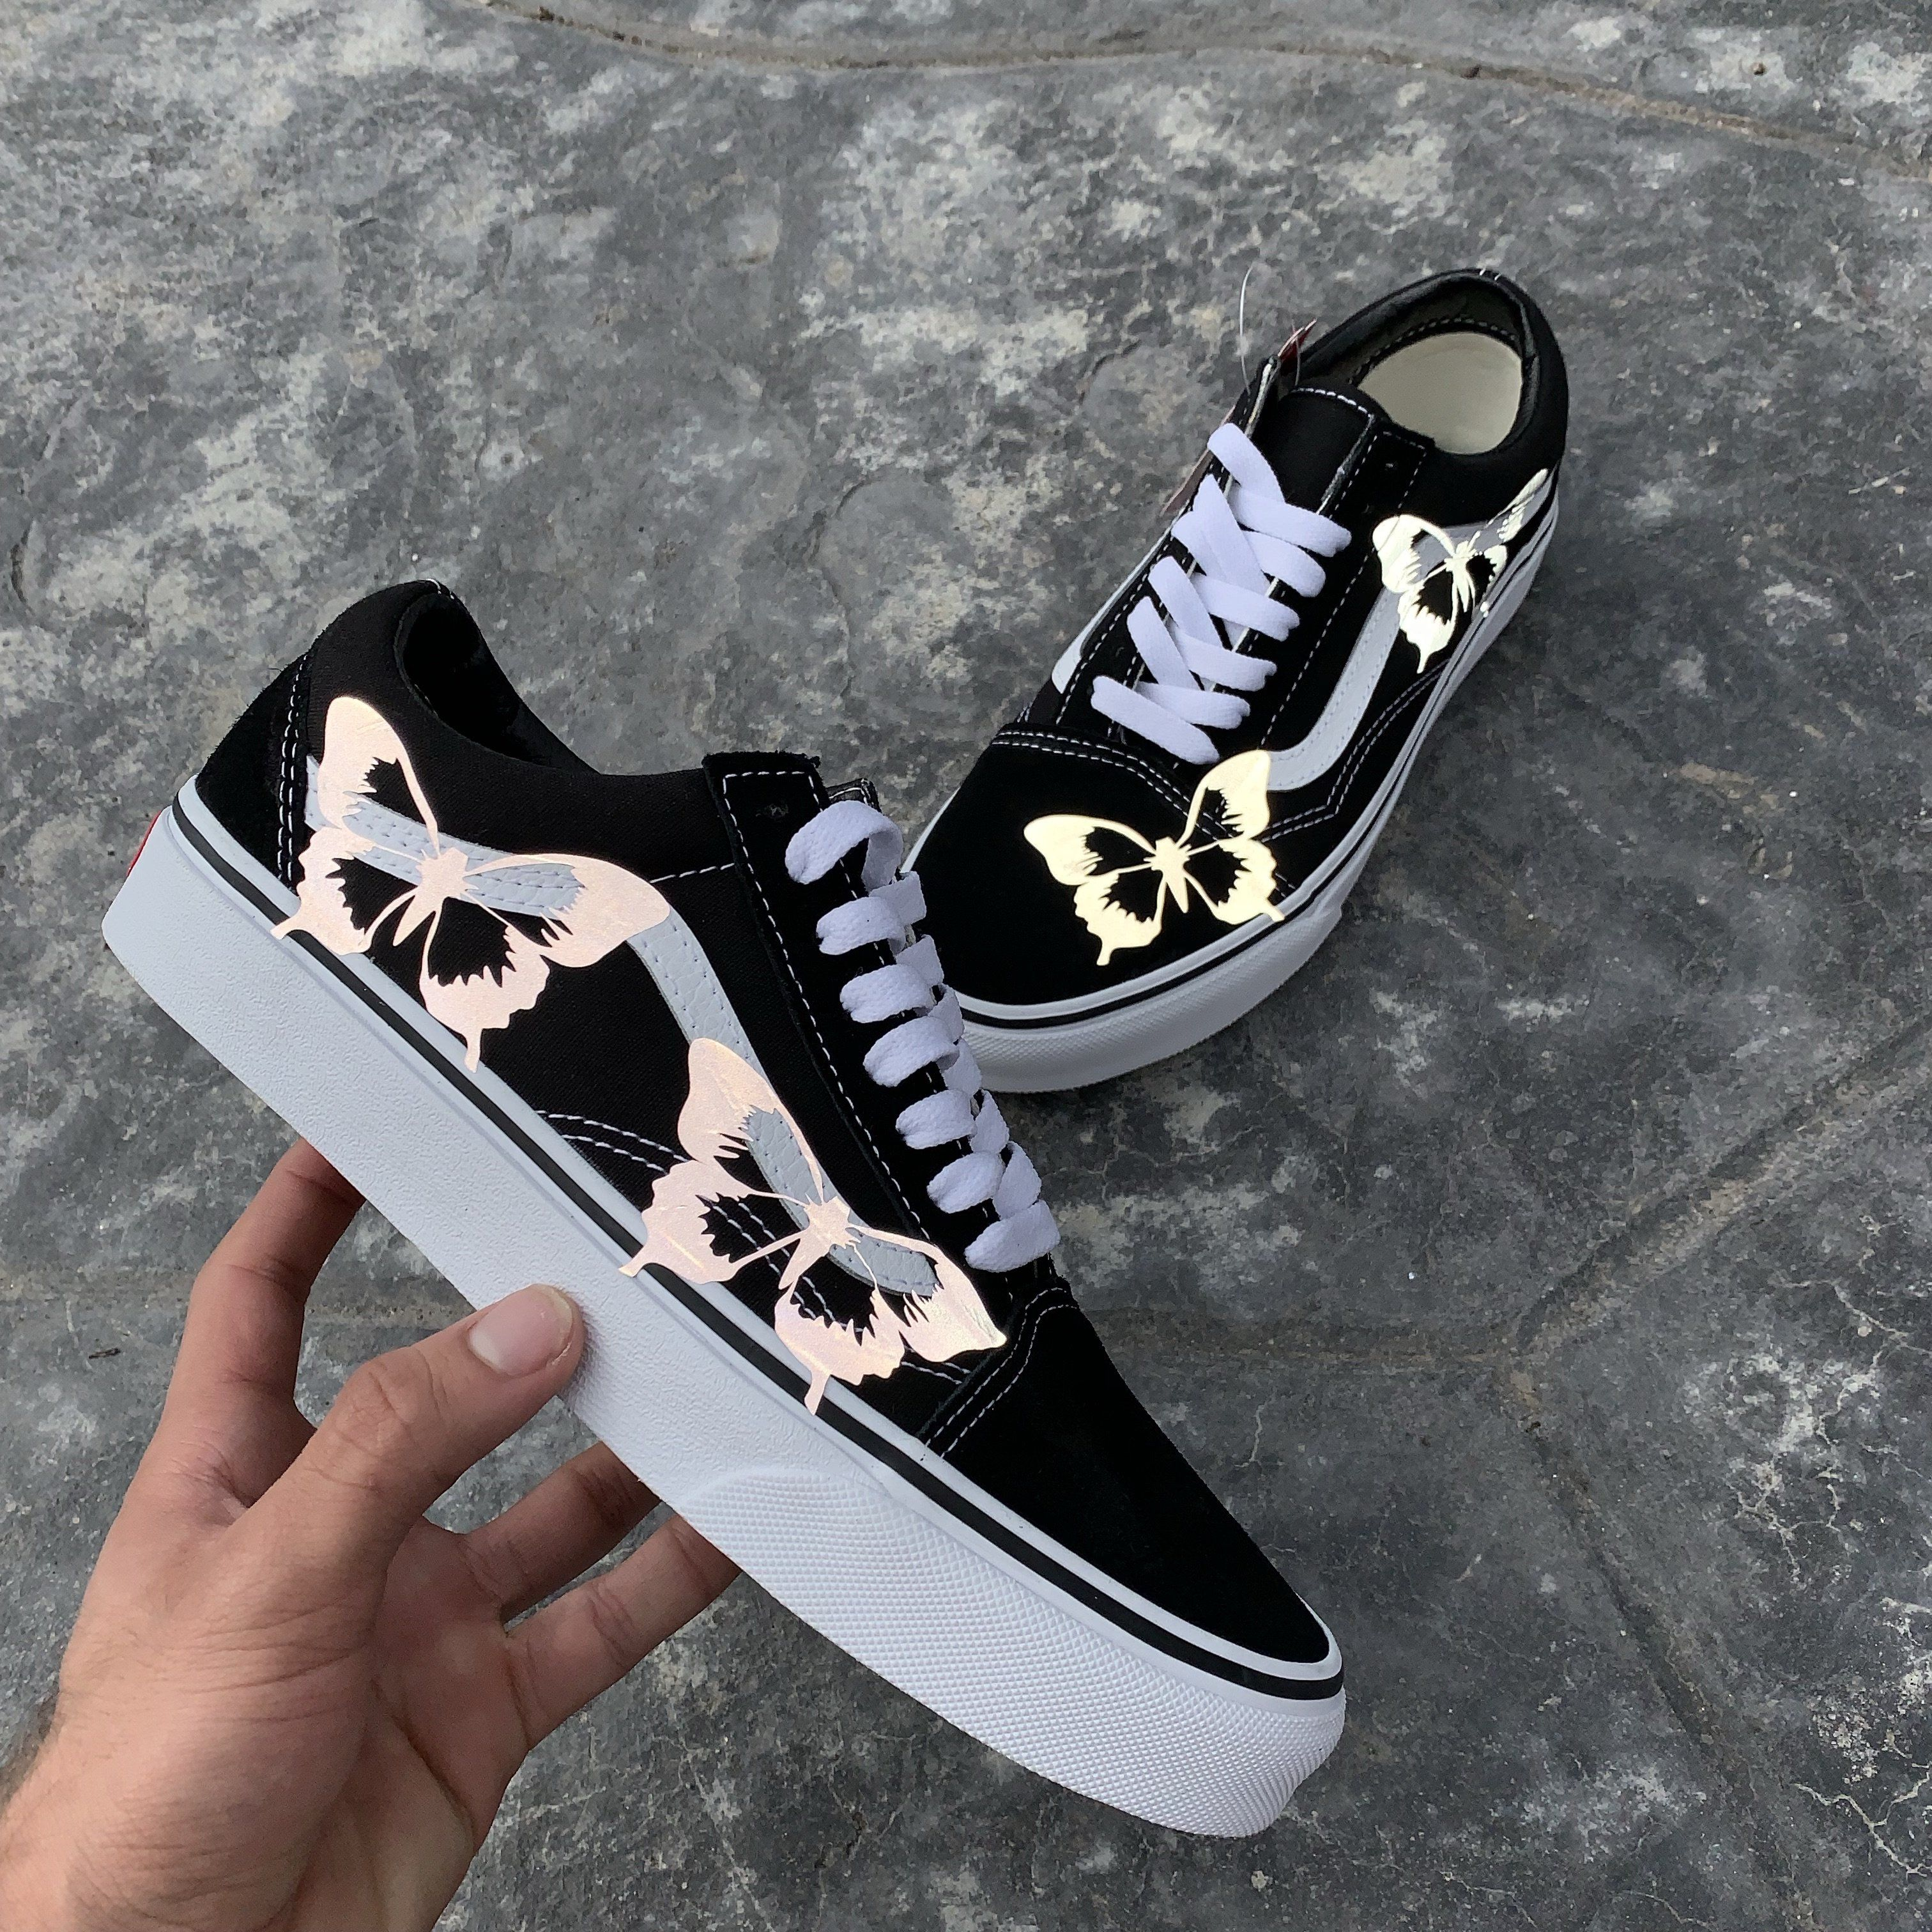 3m Reflective Butterfly Old Skool Vans Nuwavezz With Images